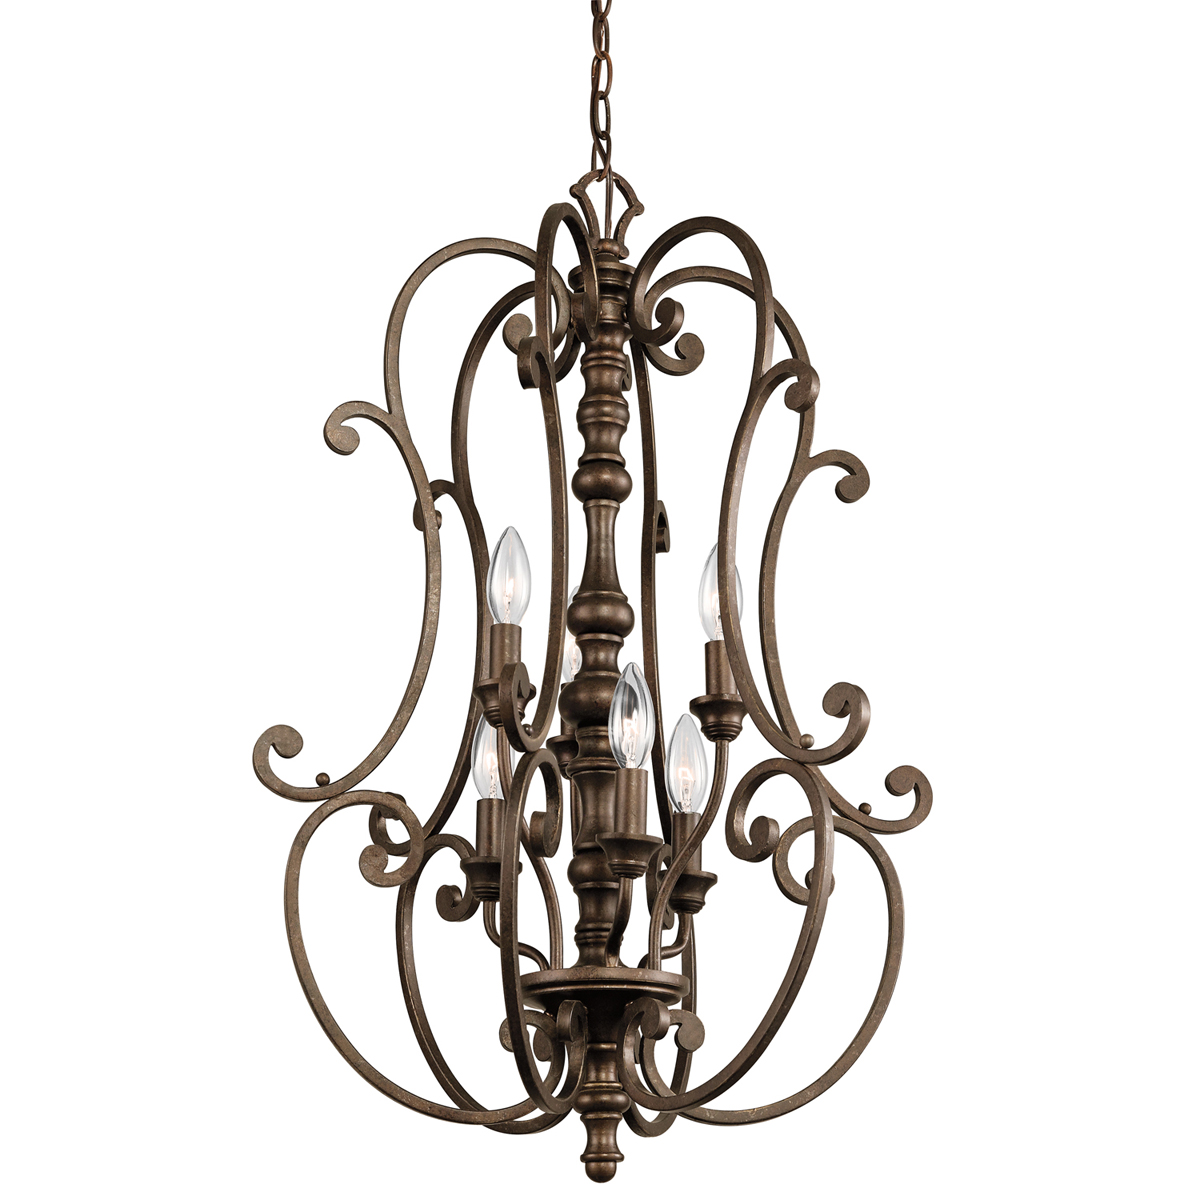 Kichler Lighting 43282trz Mithras 6 Light Foyer Cage